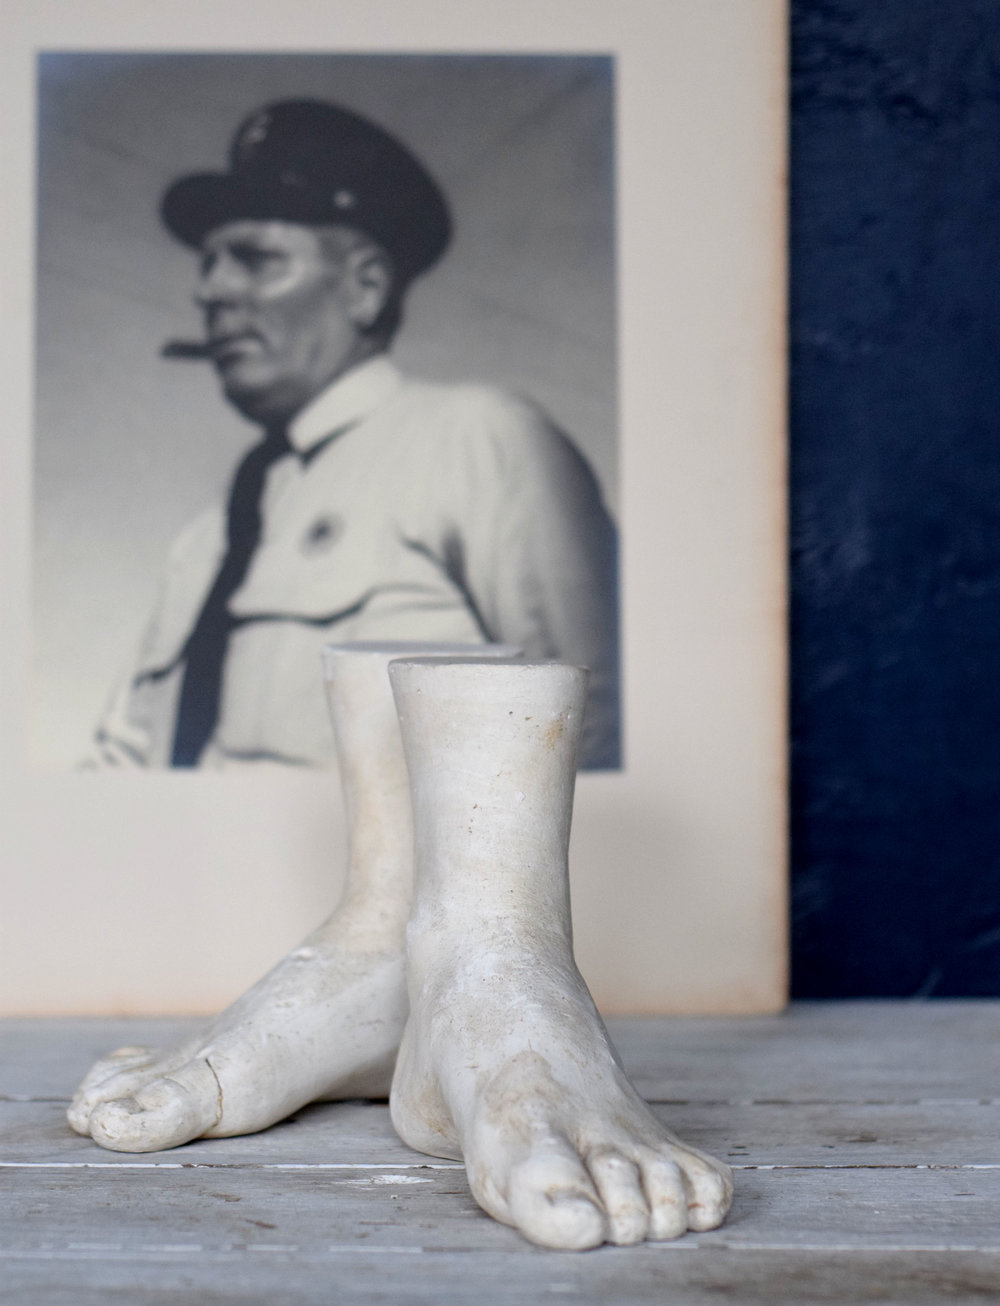 The #bossman David told us to get busy working on the online selling site; so we are putting our best foot forward -- actually, a circa 1930's french foot.